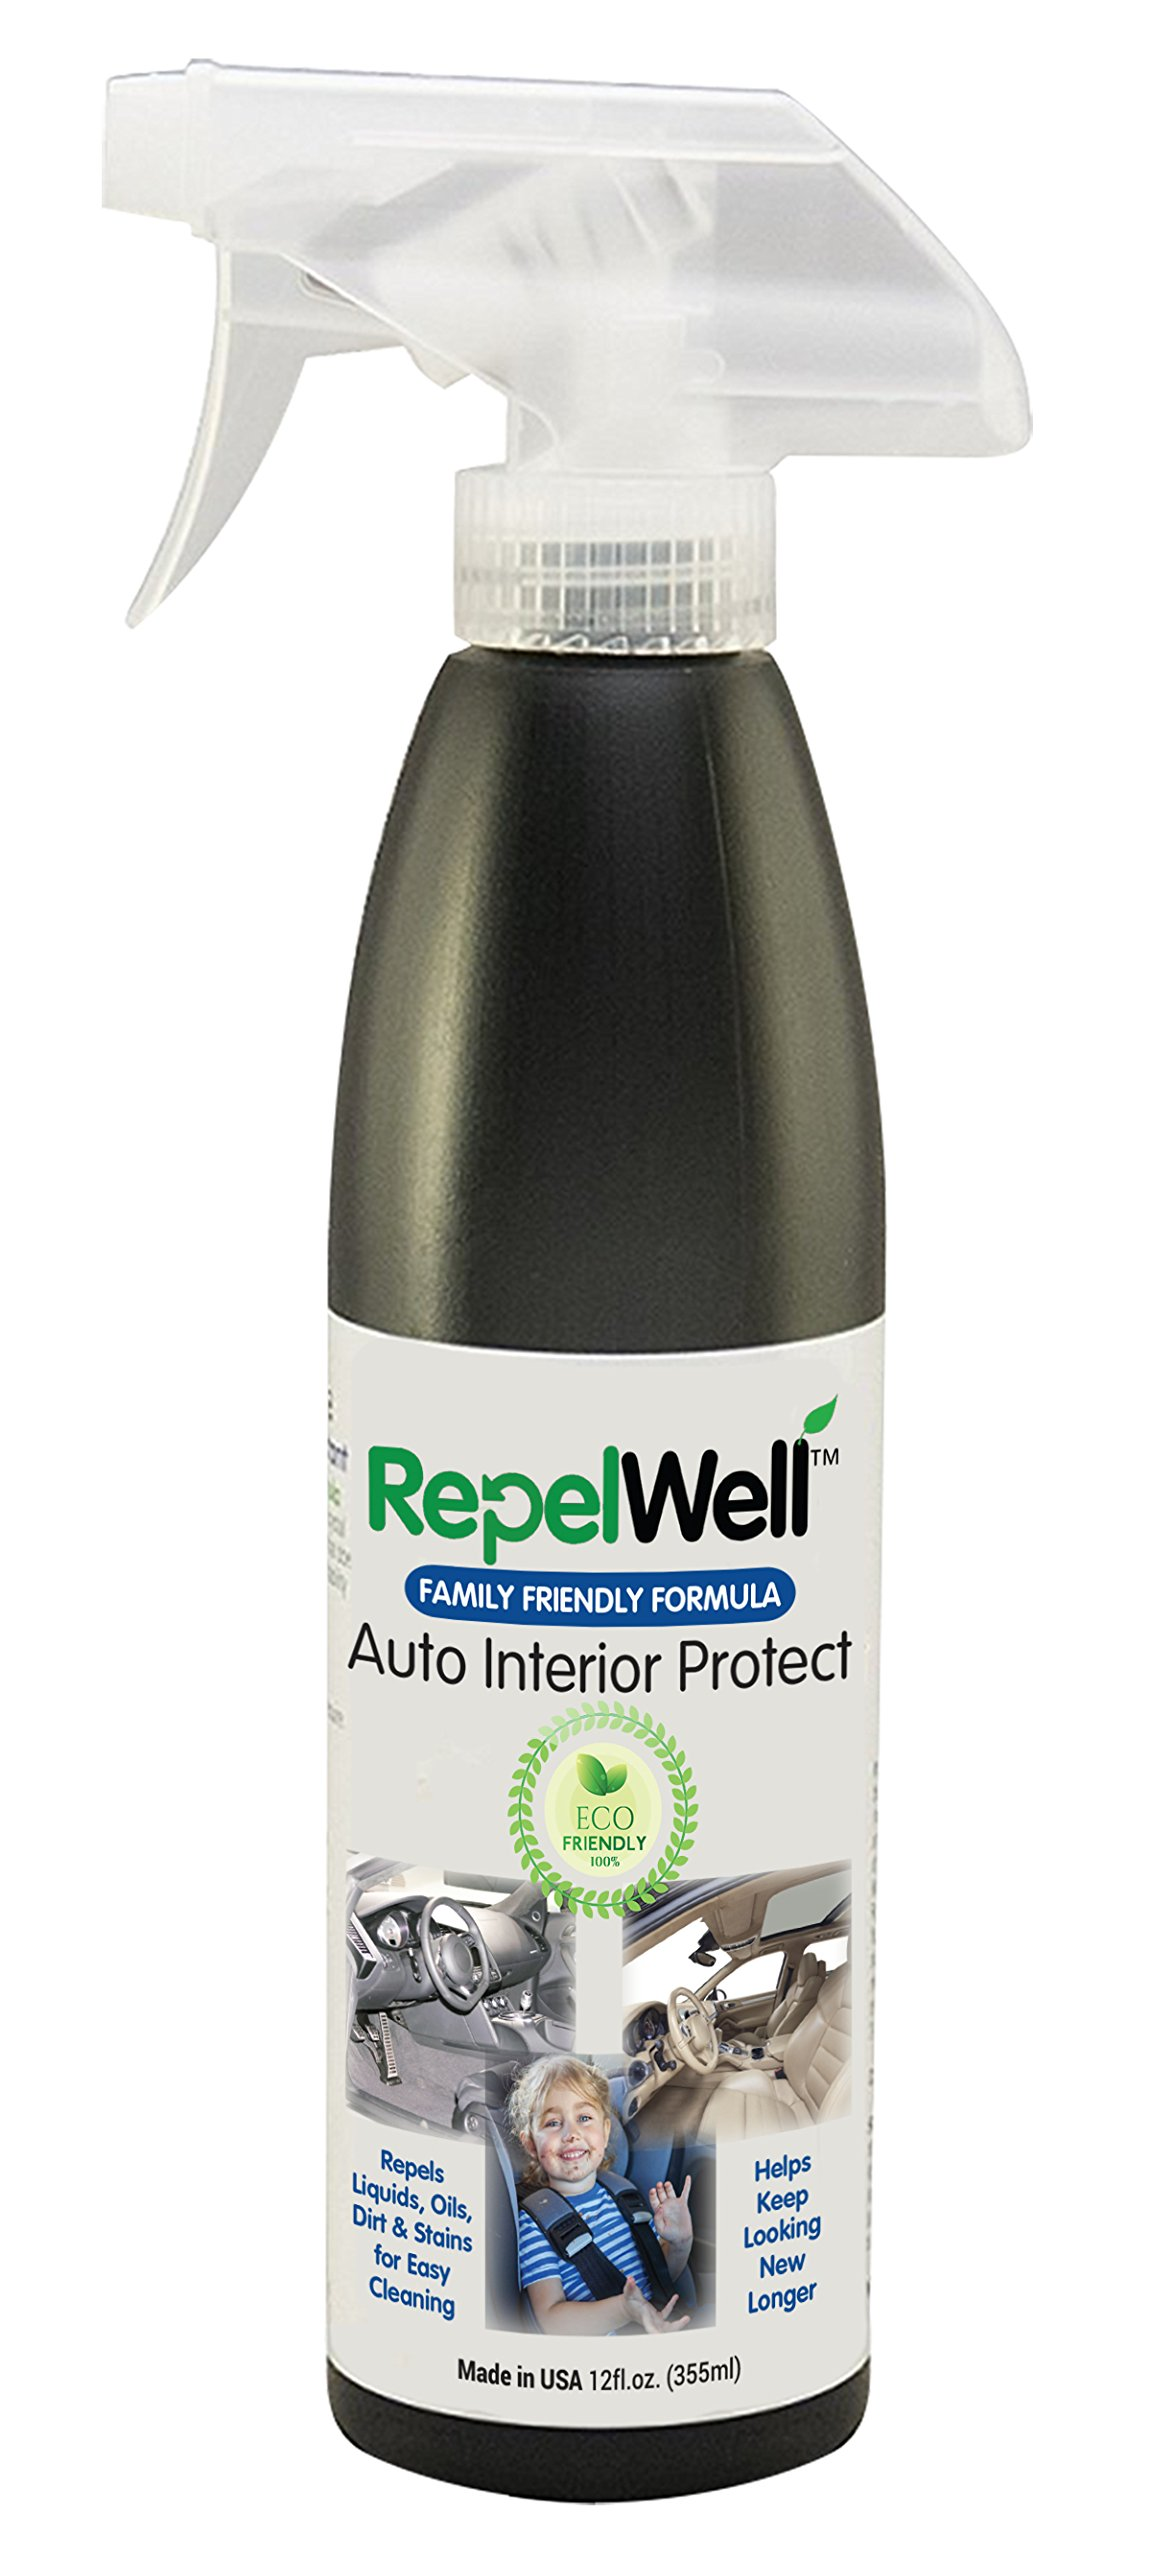 Repel Well Auto Interior Protect Stain & Water Repellent (12oz) Eco-friendly, Pet-safe Spray Keeps Leather, Suede & Fabric Car Interiors Clean, Dry & Looking New, Longer, Great for Kids' Car Seats